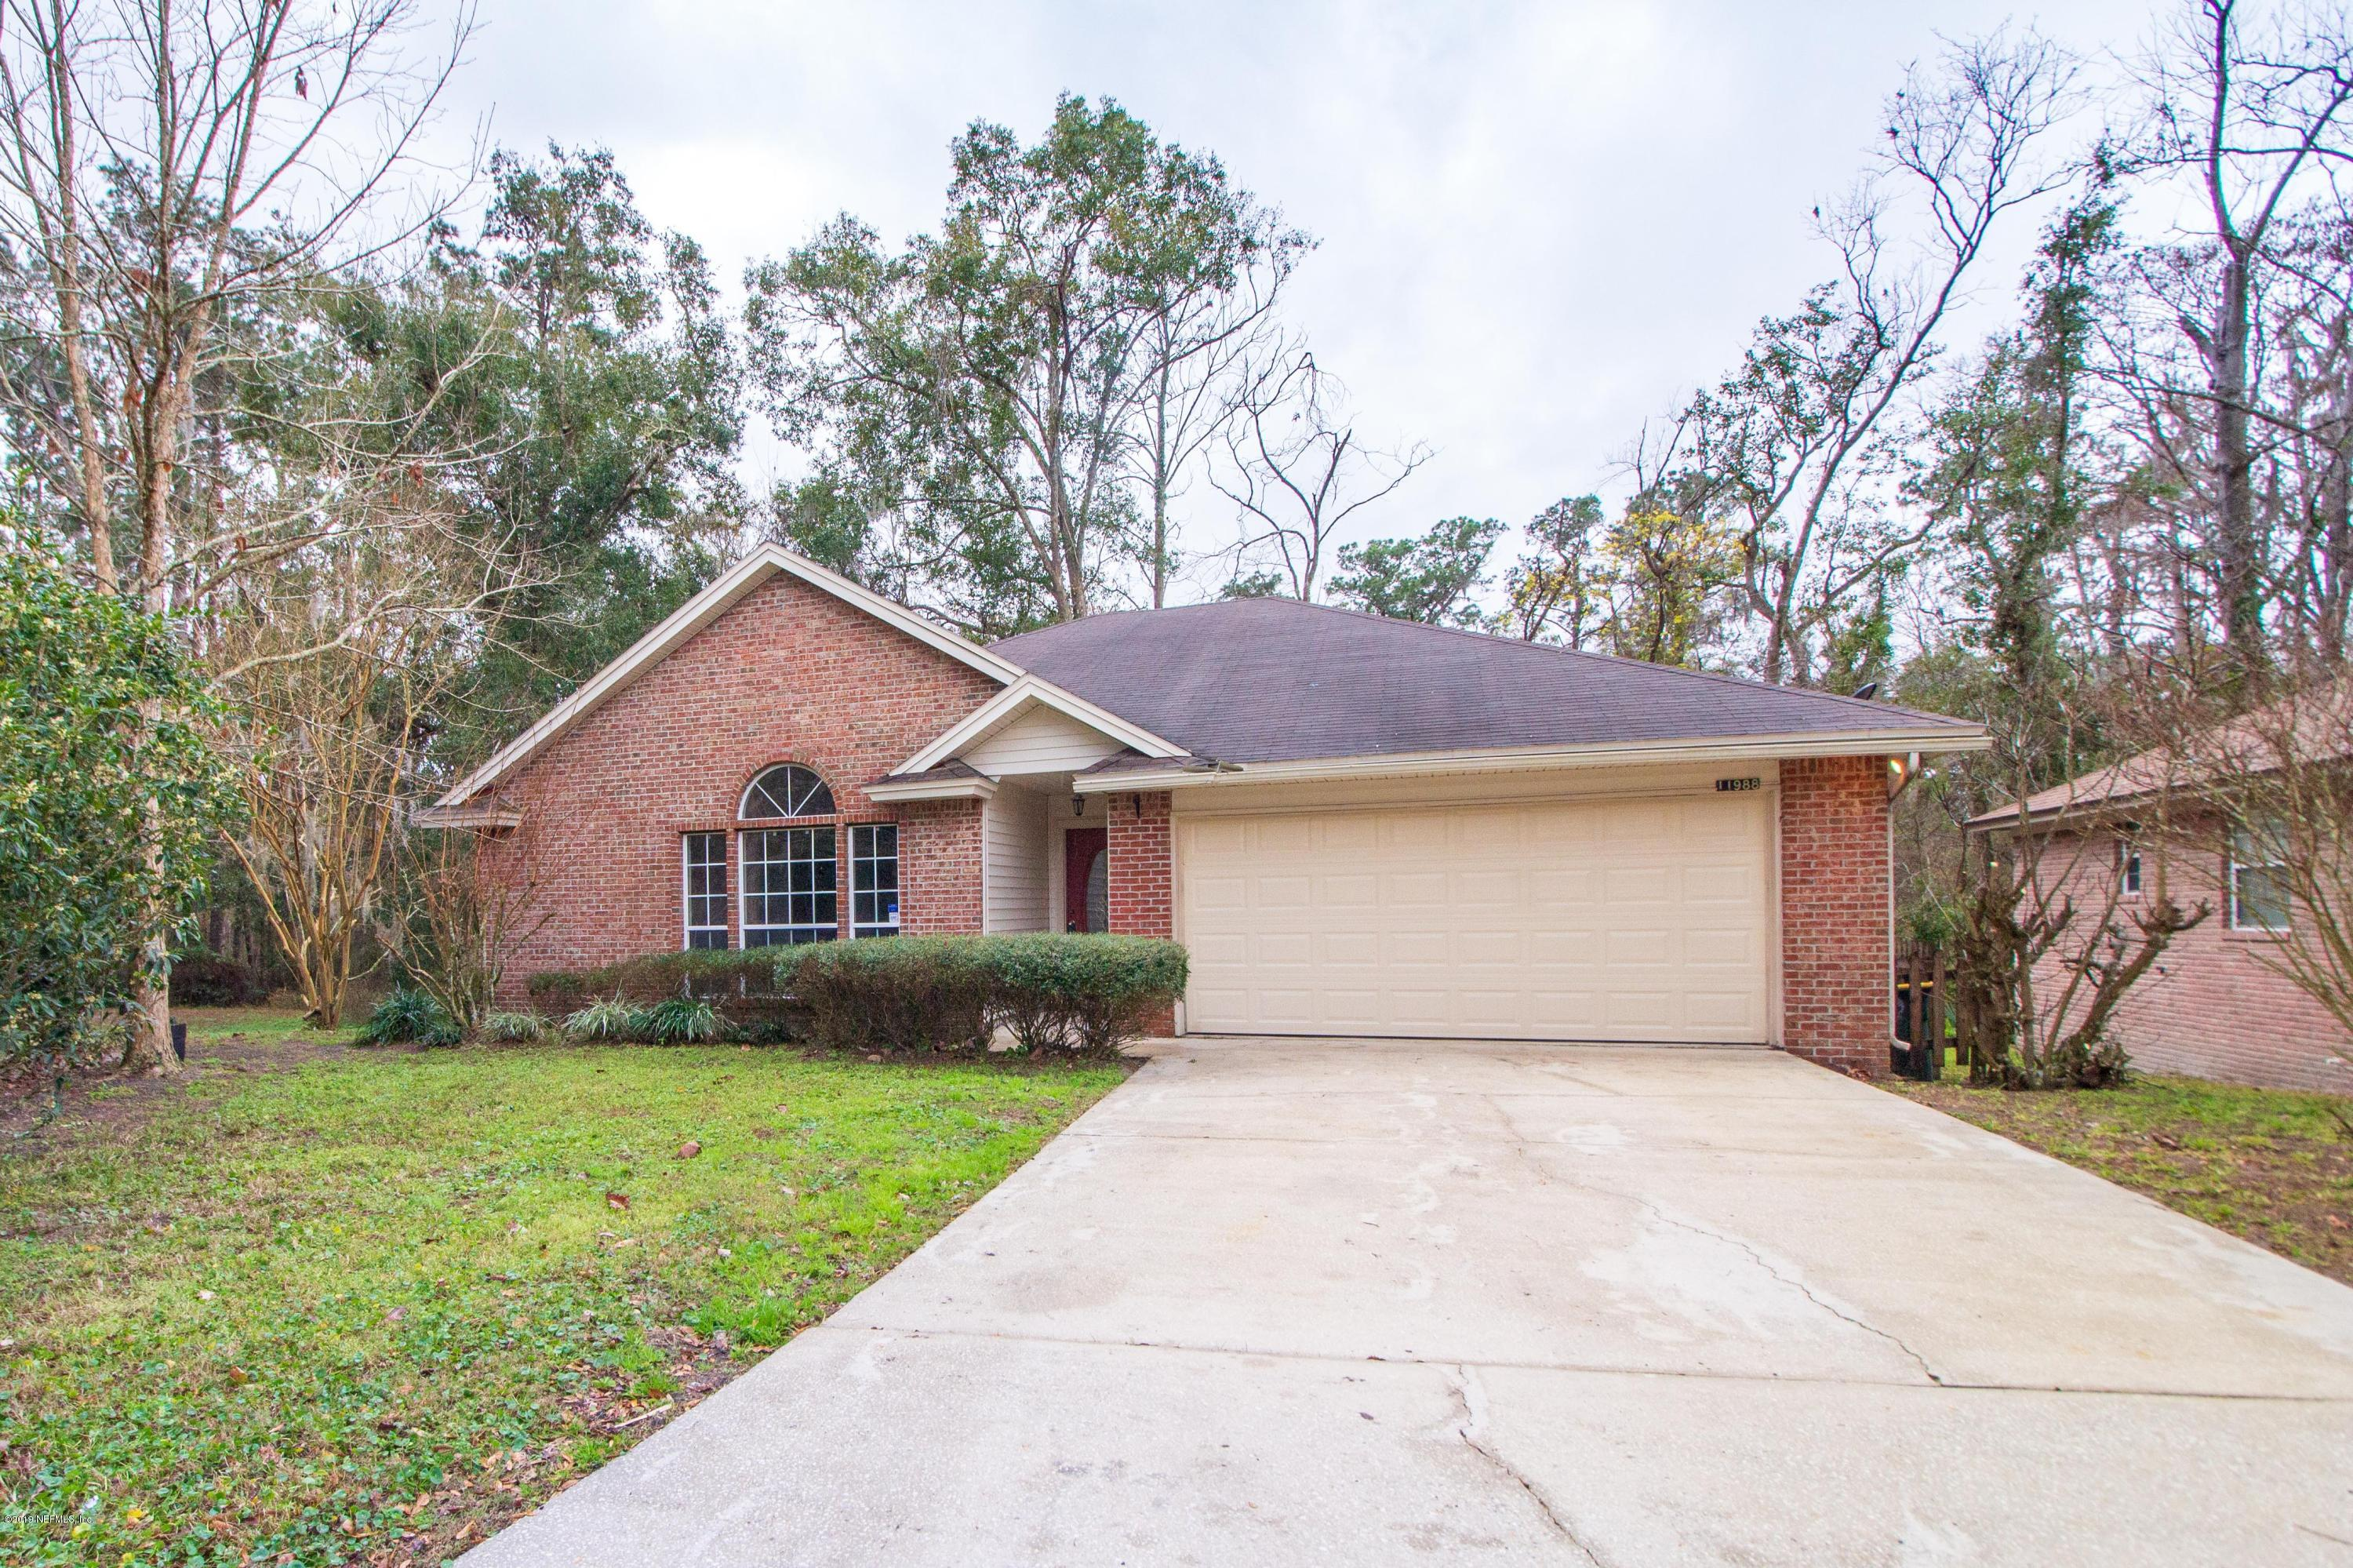 Photo of 11988 SWOOPING WILLOW, JACKSONVILLE, FL 32223